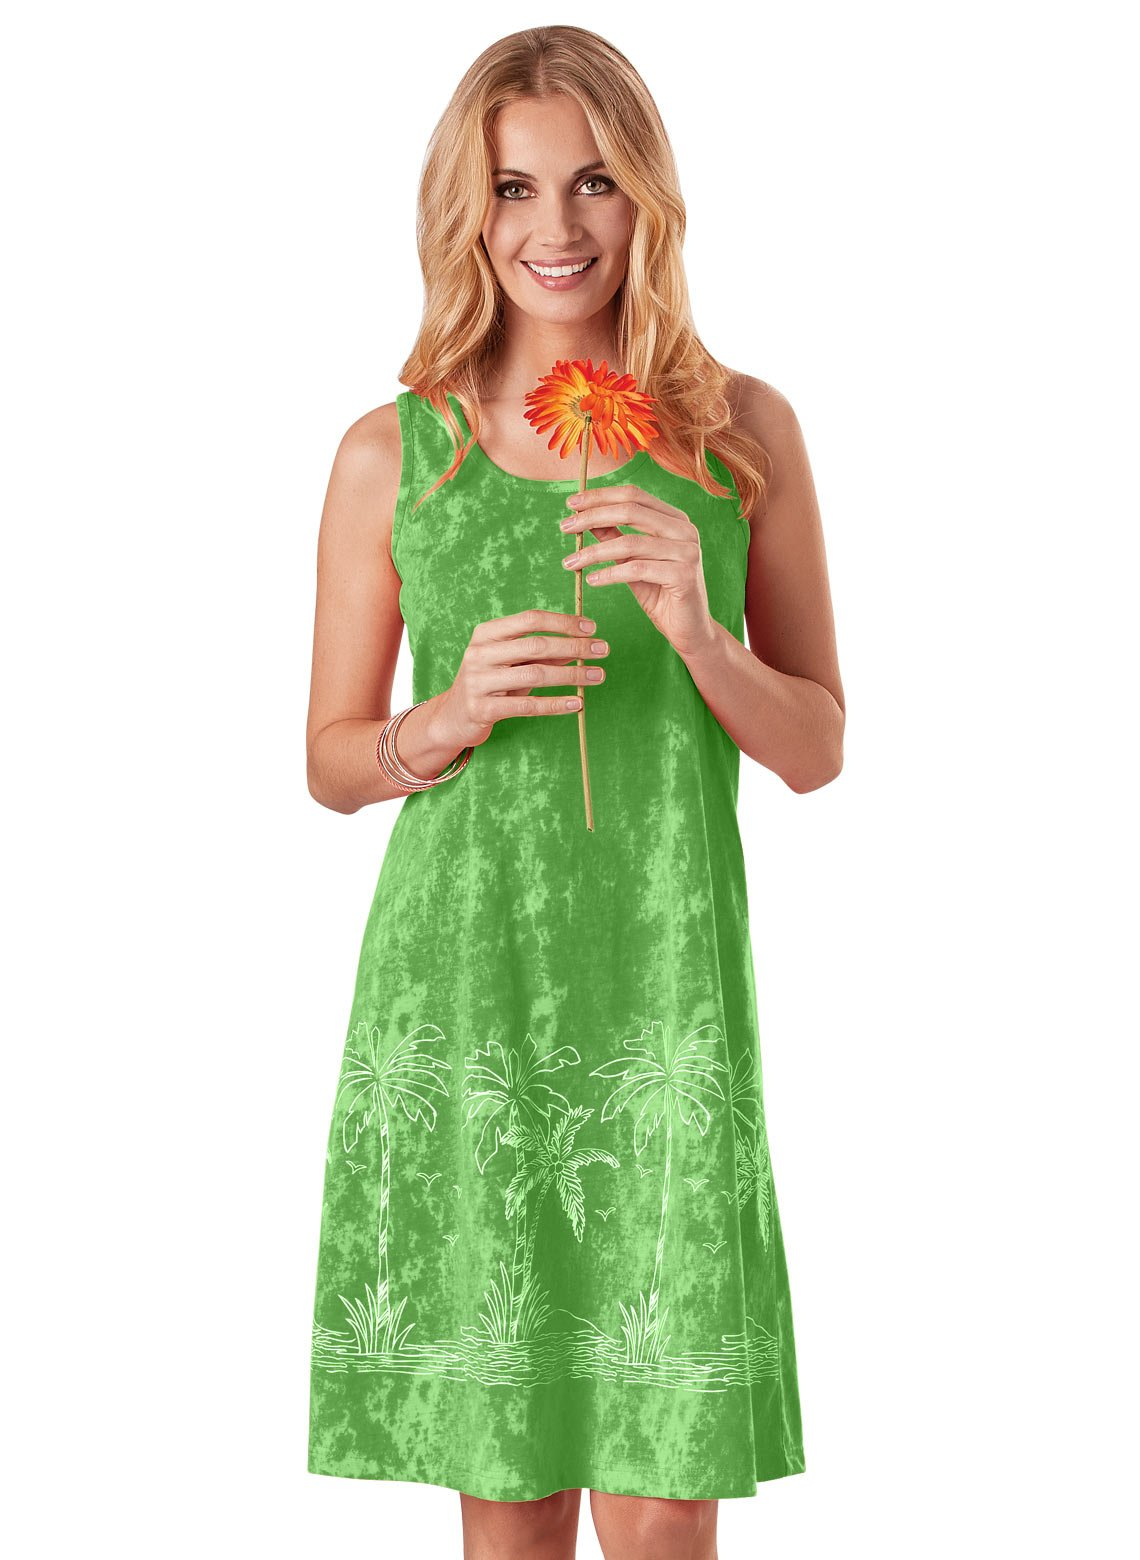 Carol Wright Gifts Dress Tropical Tank, Color Lime, Size Extra Large (1X), Lime, Size Extra Large (1X)